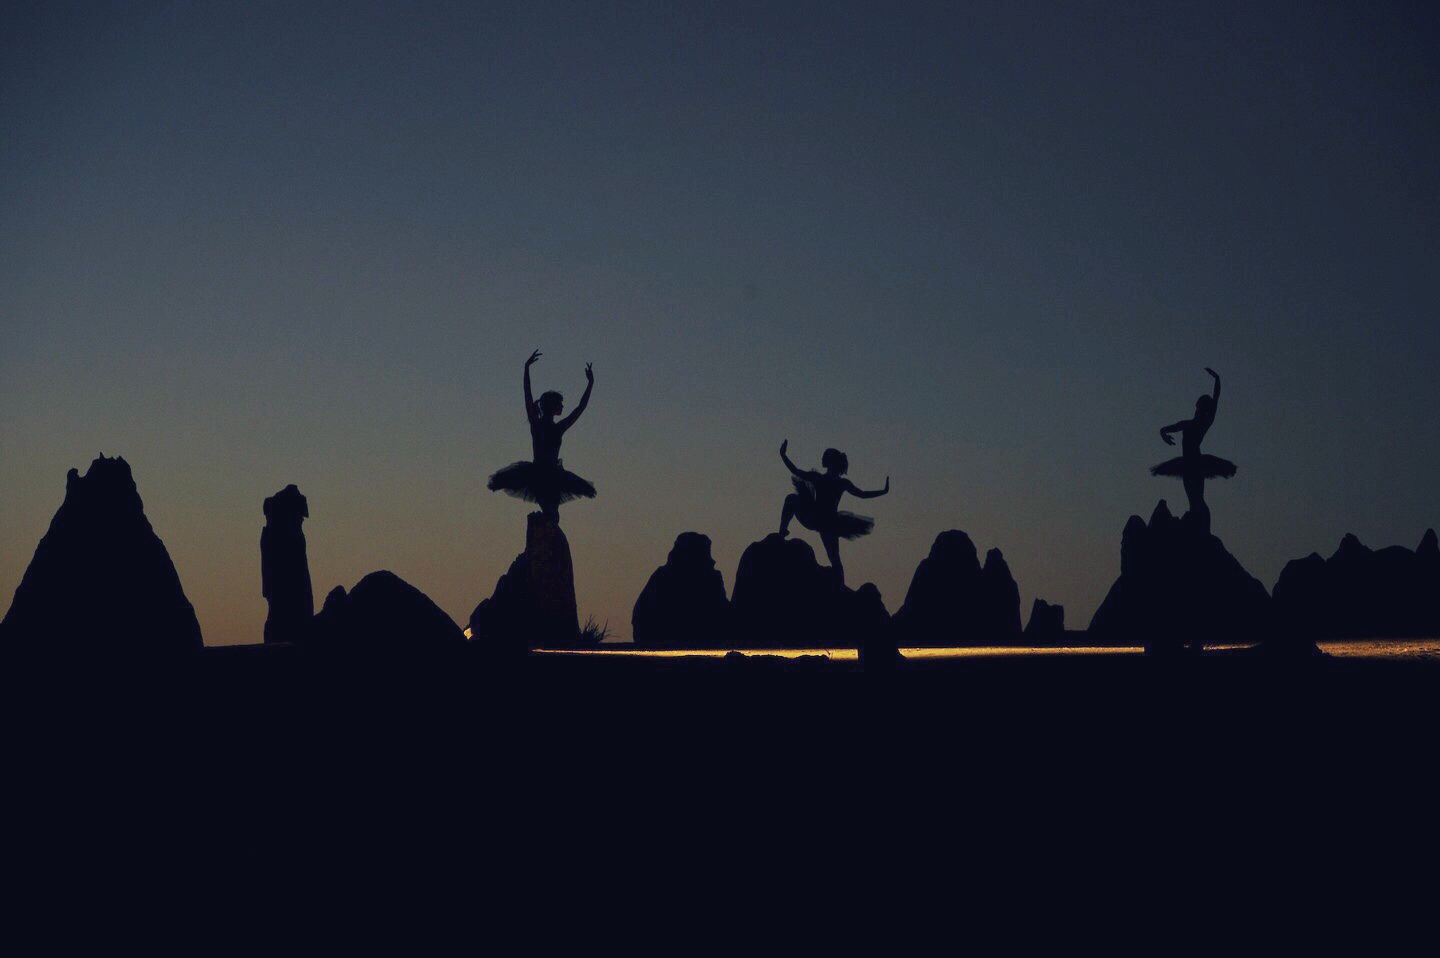 A still frame of the dancers at dusk, light from a dedo sstreamingg past them.